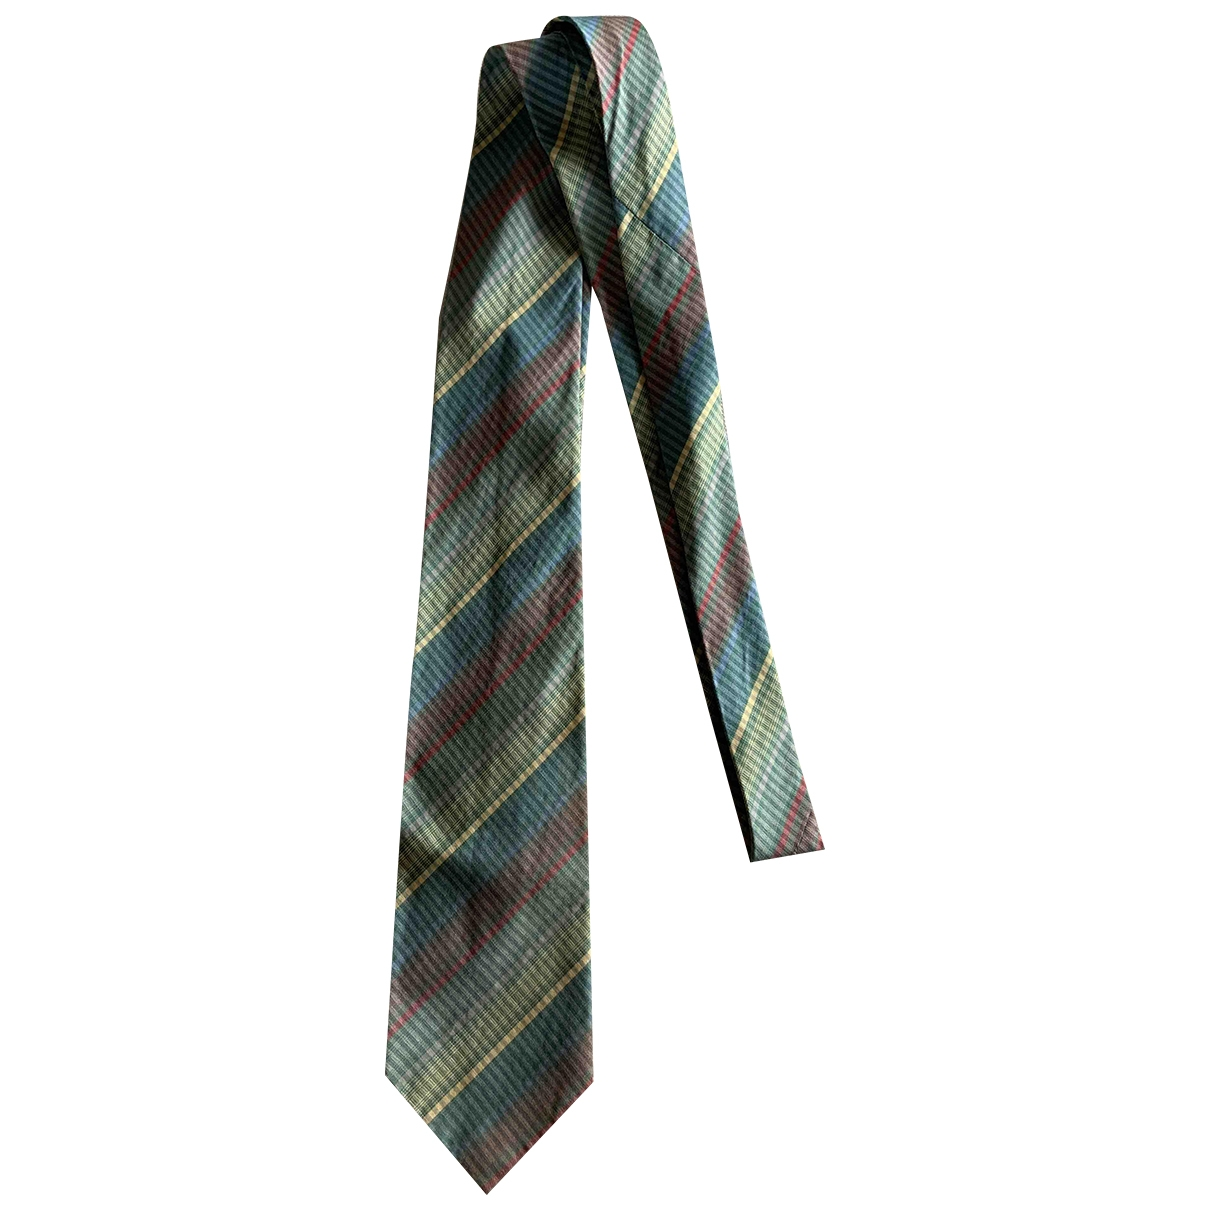 Gianni Versace \N Multicolour Cotton Ties for Men \N